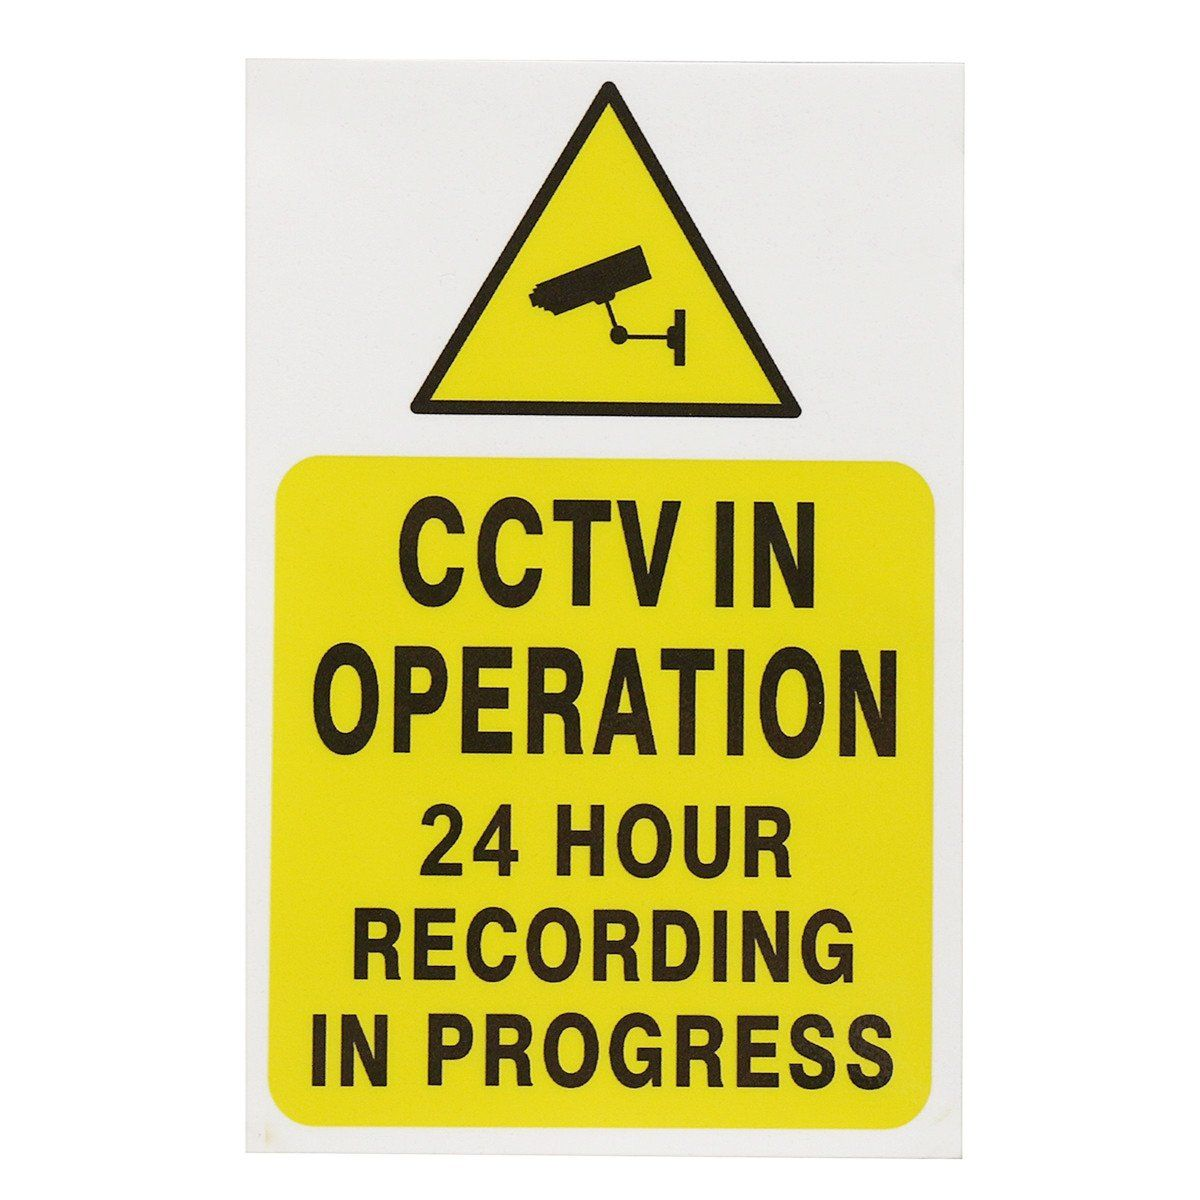 Sticker Pack of 10-150mm x 200mm - Security CCTV Sign MISC11 A5 Camera -